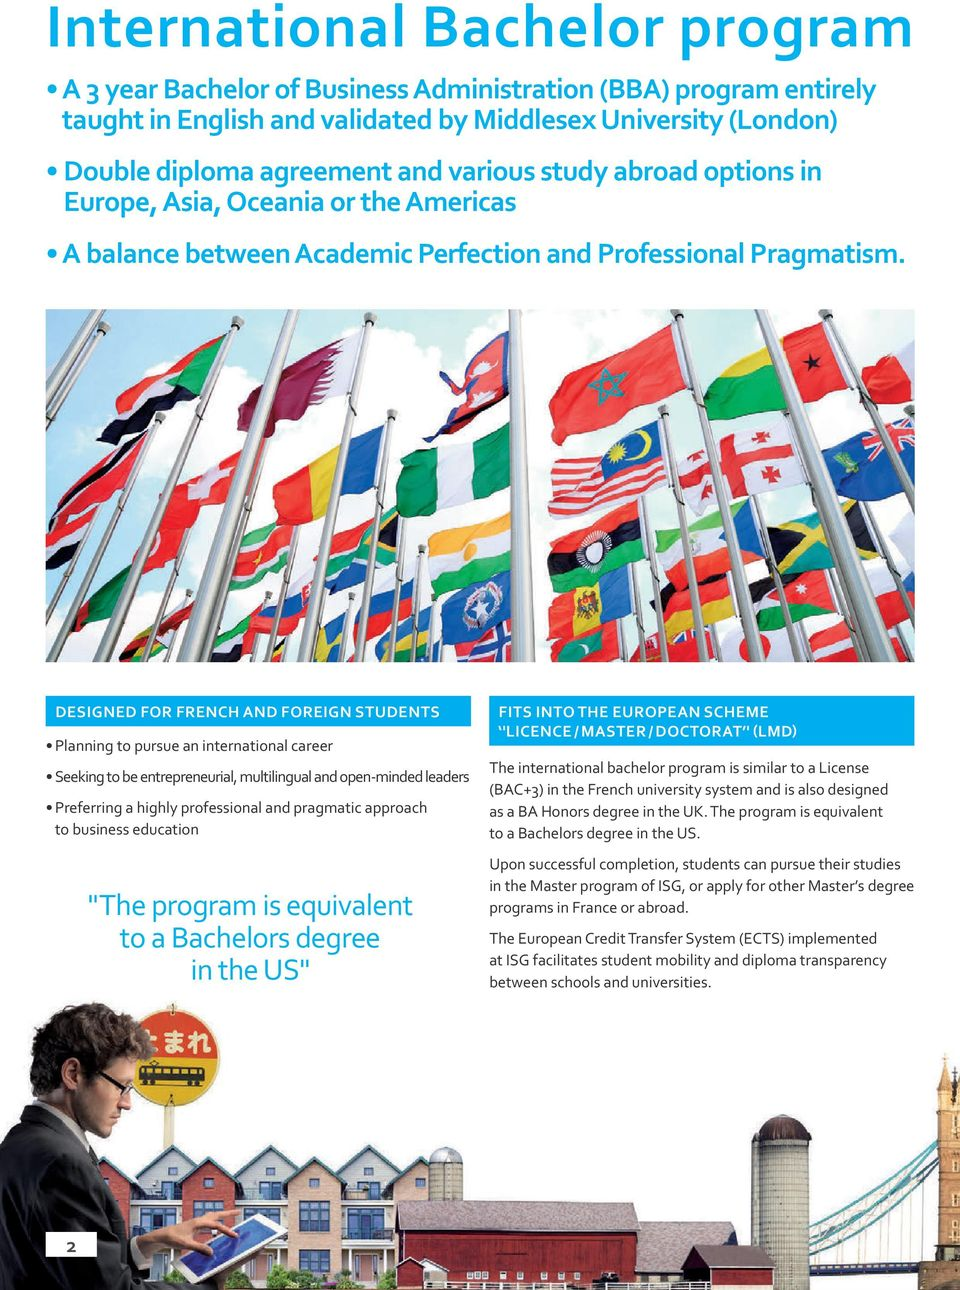 DESIGNED FOR FRENCH AND FOREIGN STUDENTS Planning to pursue an international career Seeking to be entrepreneurial, multilingual and open-minded leaders Preferring a highly professional and pragmatic